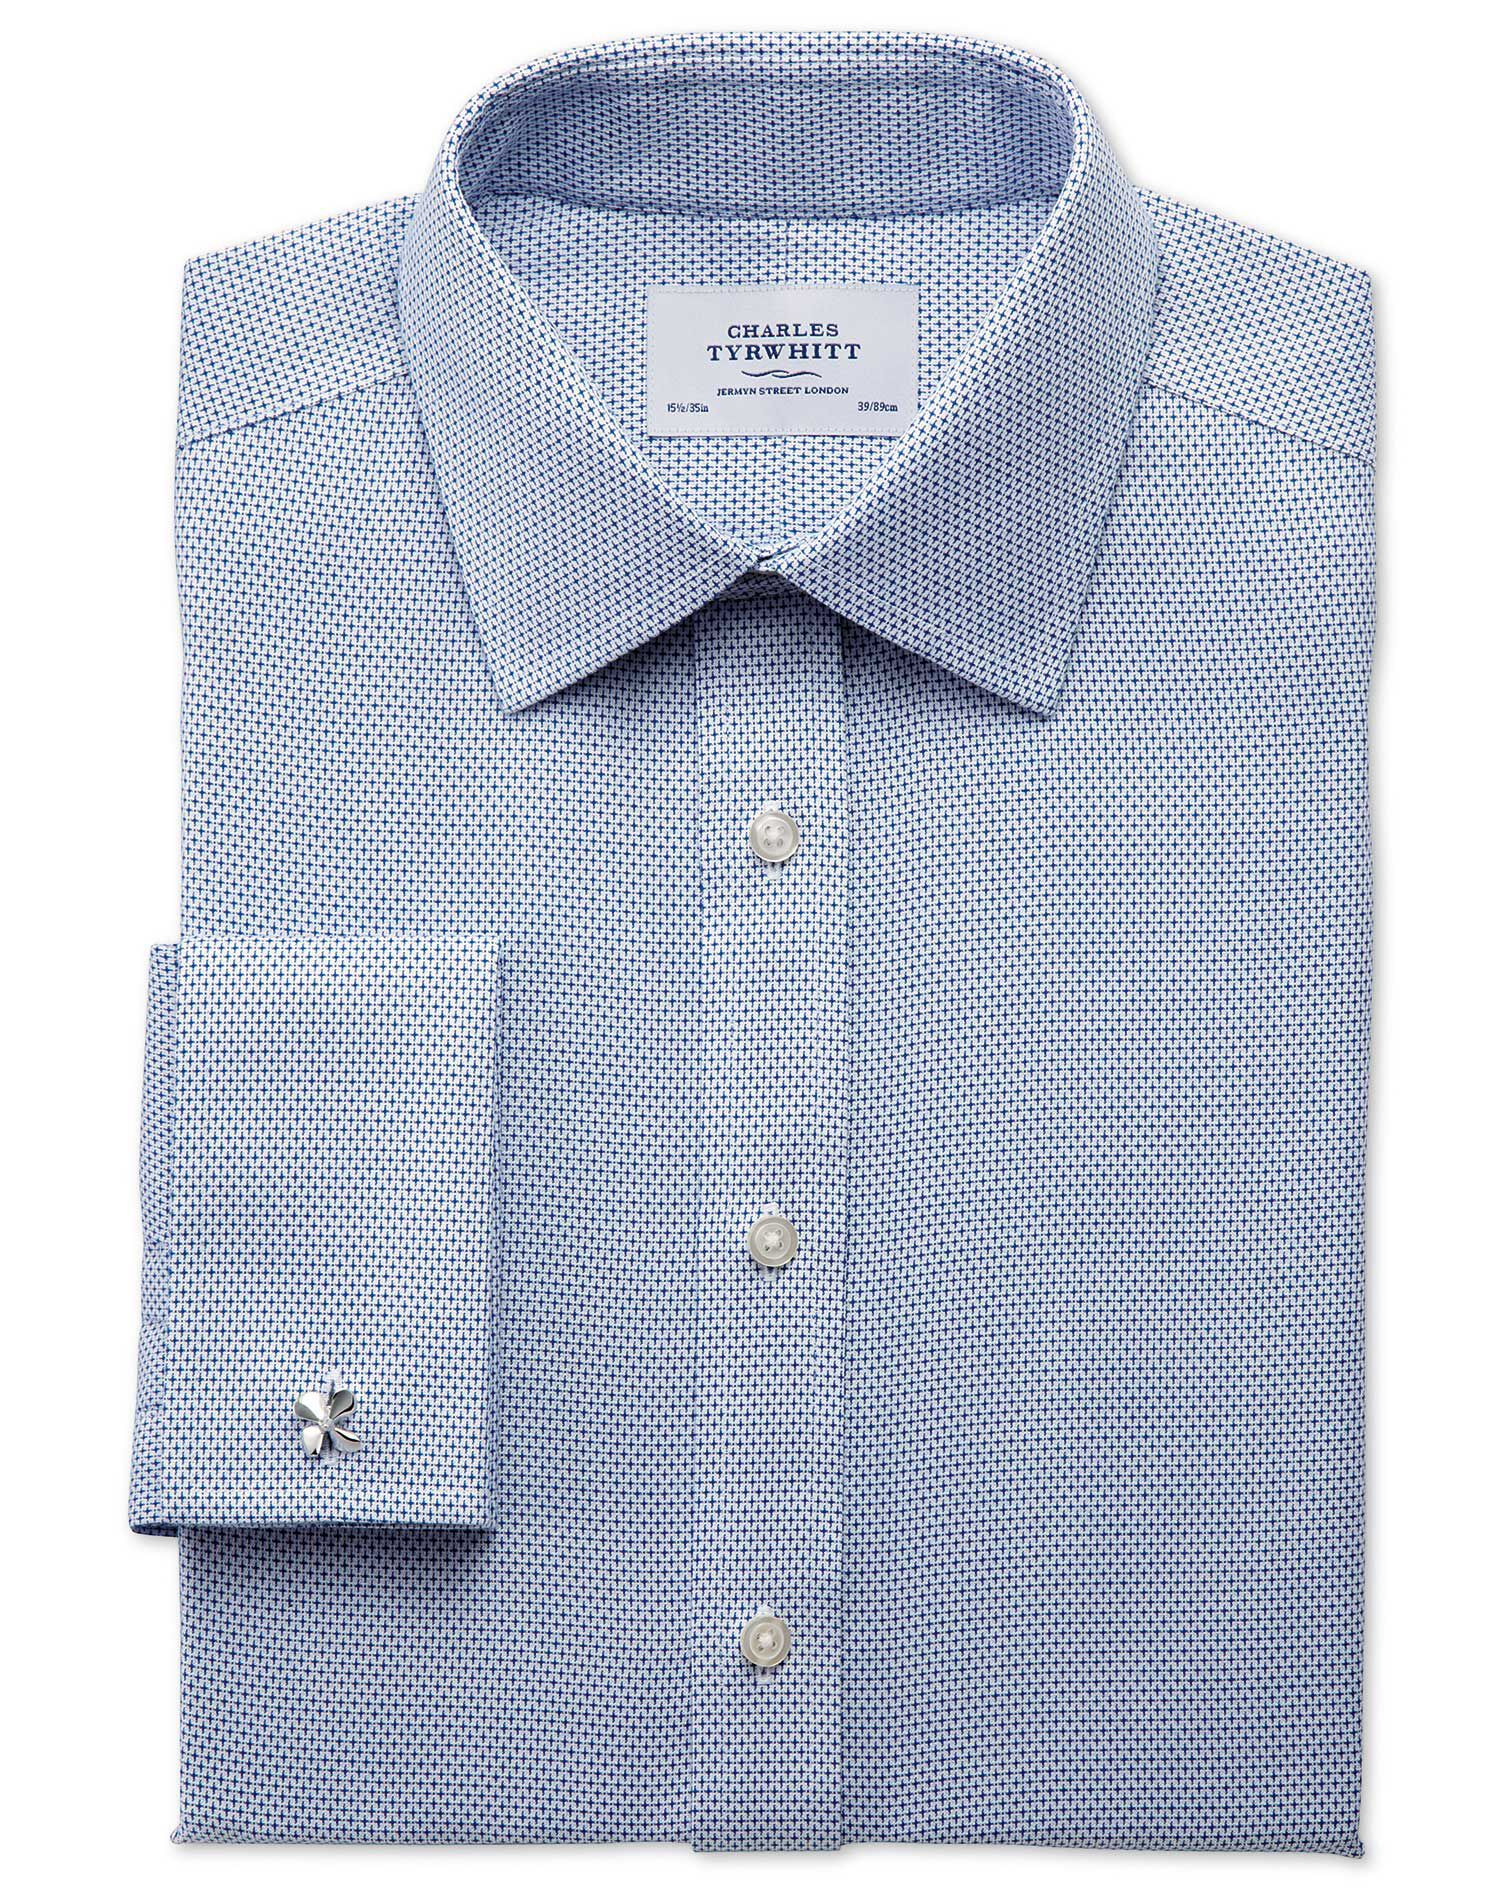 Classic Fit Non-Iron Imperial Weave Blue Cotton Formal Shirt Single Cuff Size 16.5/34 by Charles Tyr